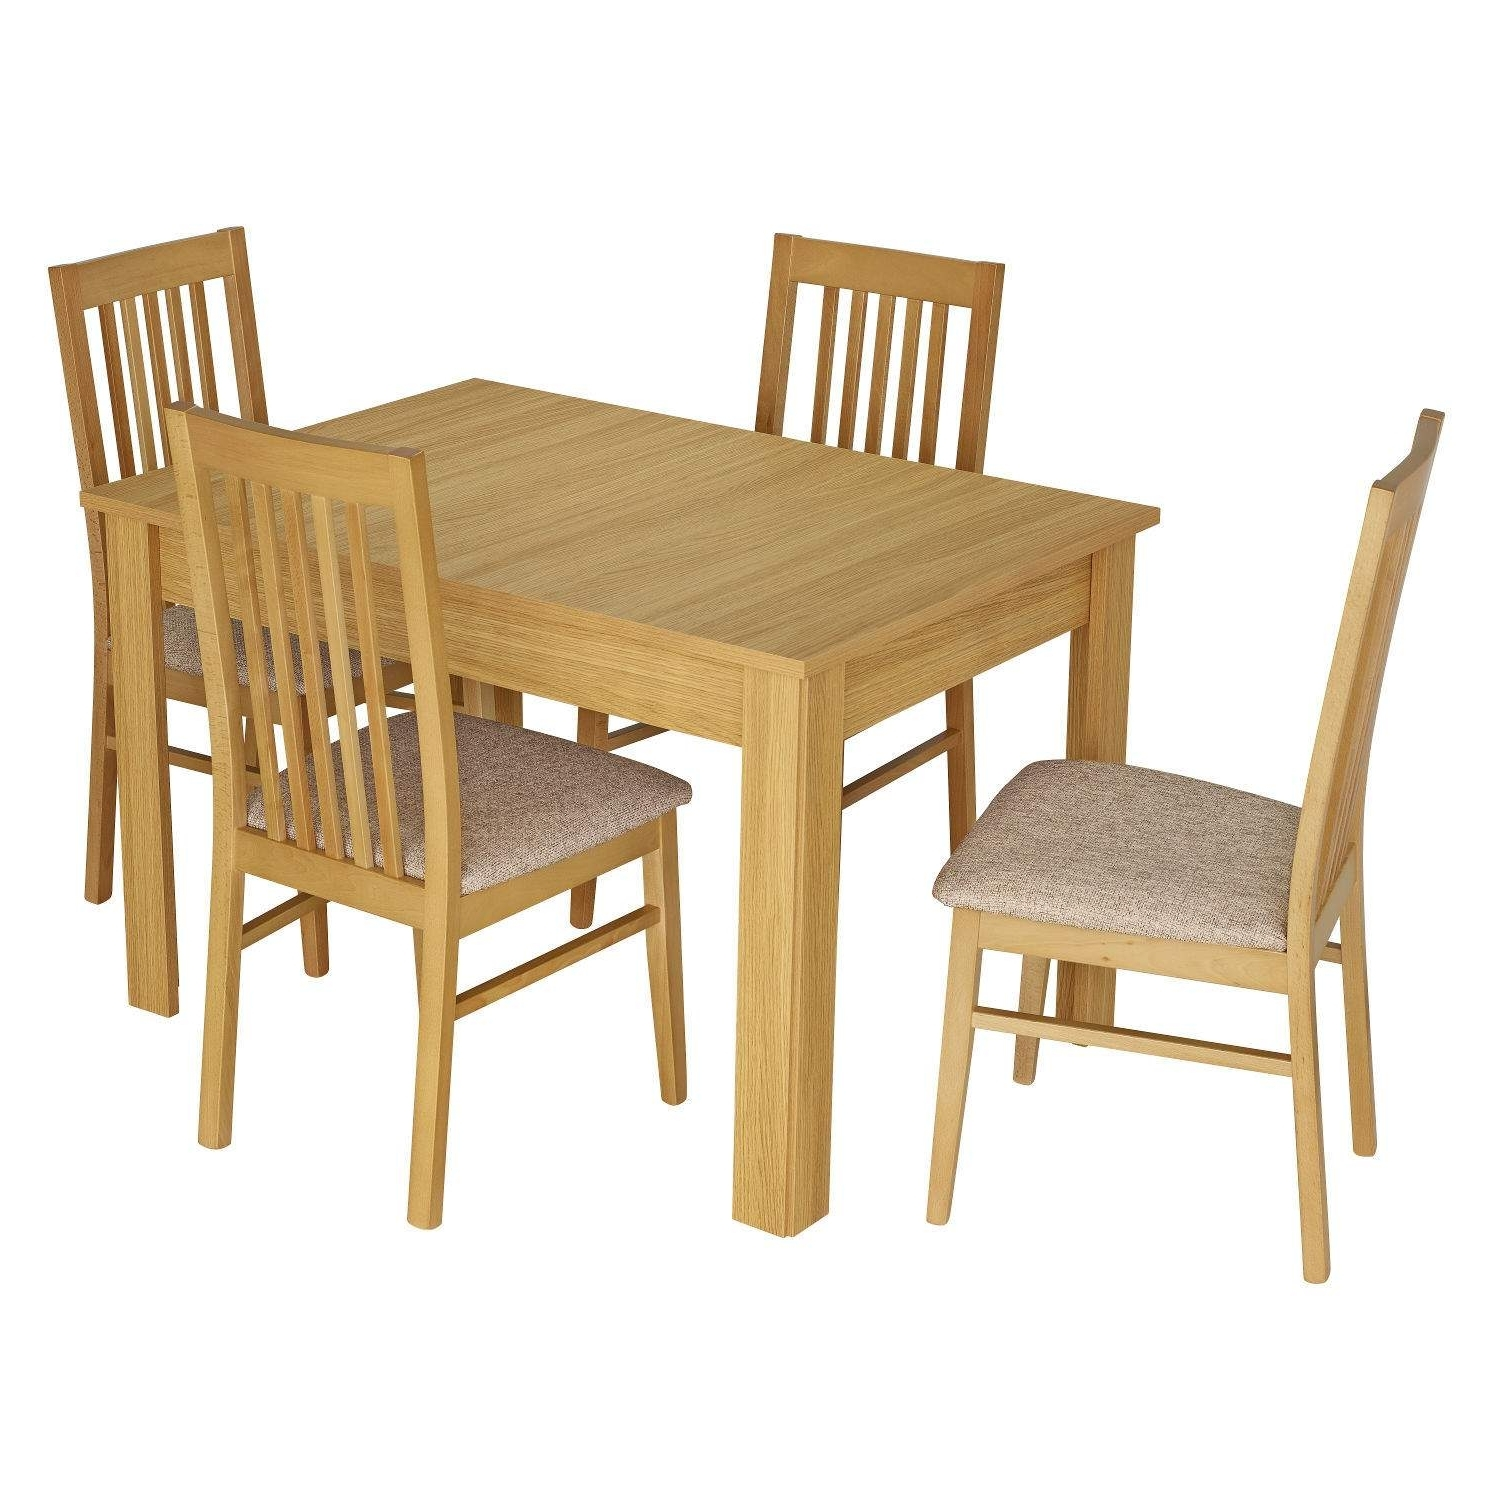 Salou Small Extending Dining Table With 4 Chairs Next Wooden Dining Inside Widely Used Small Extending Dining Tables And Chairs (View 18 of 25)